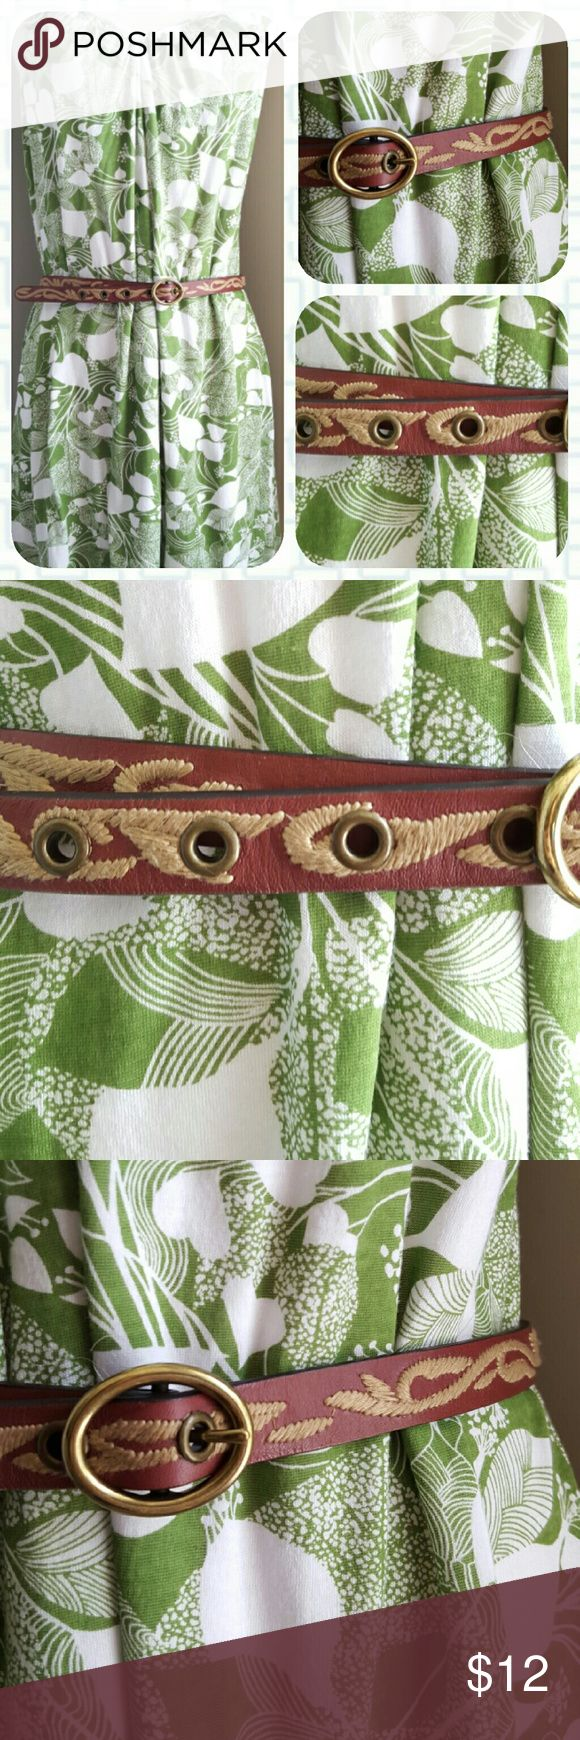 Banana Republic Vinery Leather Skinny Belt Banana Republic brown skinny belt with tan embroidered vines. Face is genuine leather, back is synthetic leather. Five holes with gold buckle. Size medium. Like new with no flaws. <3 Banana Republic Accessories Belts